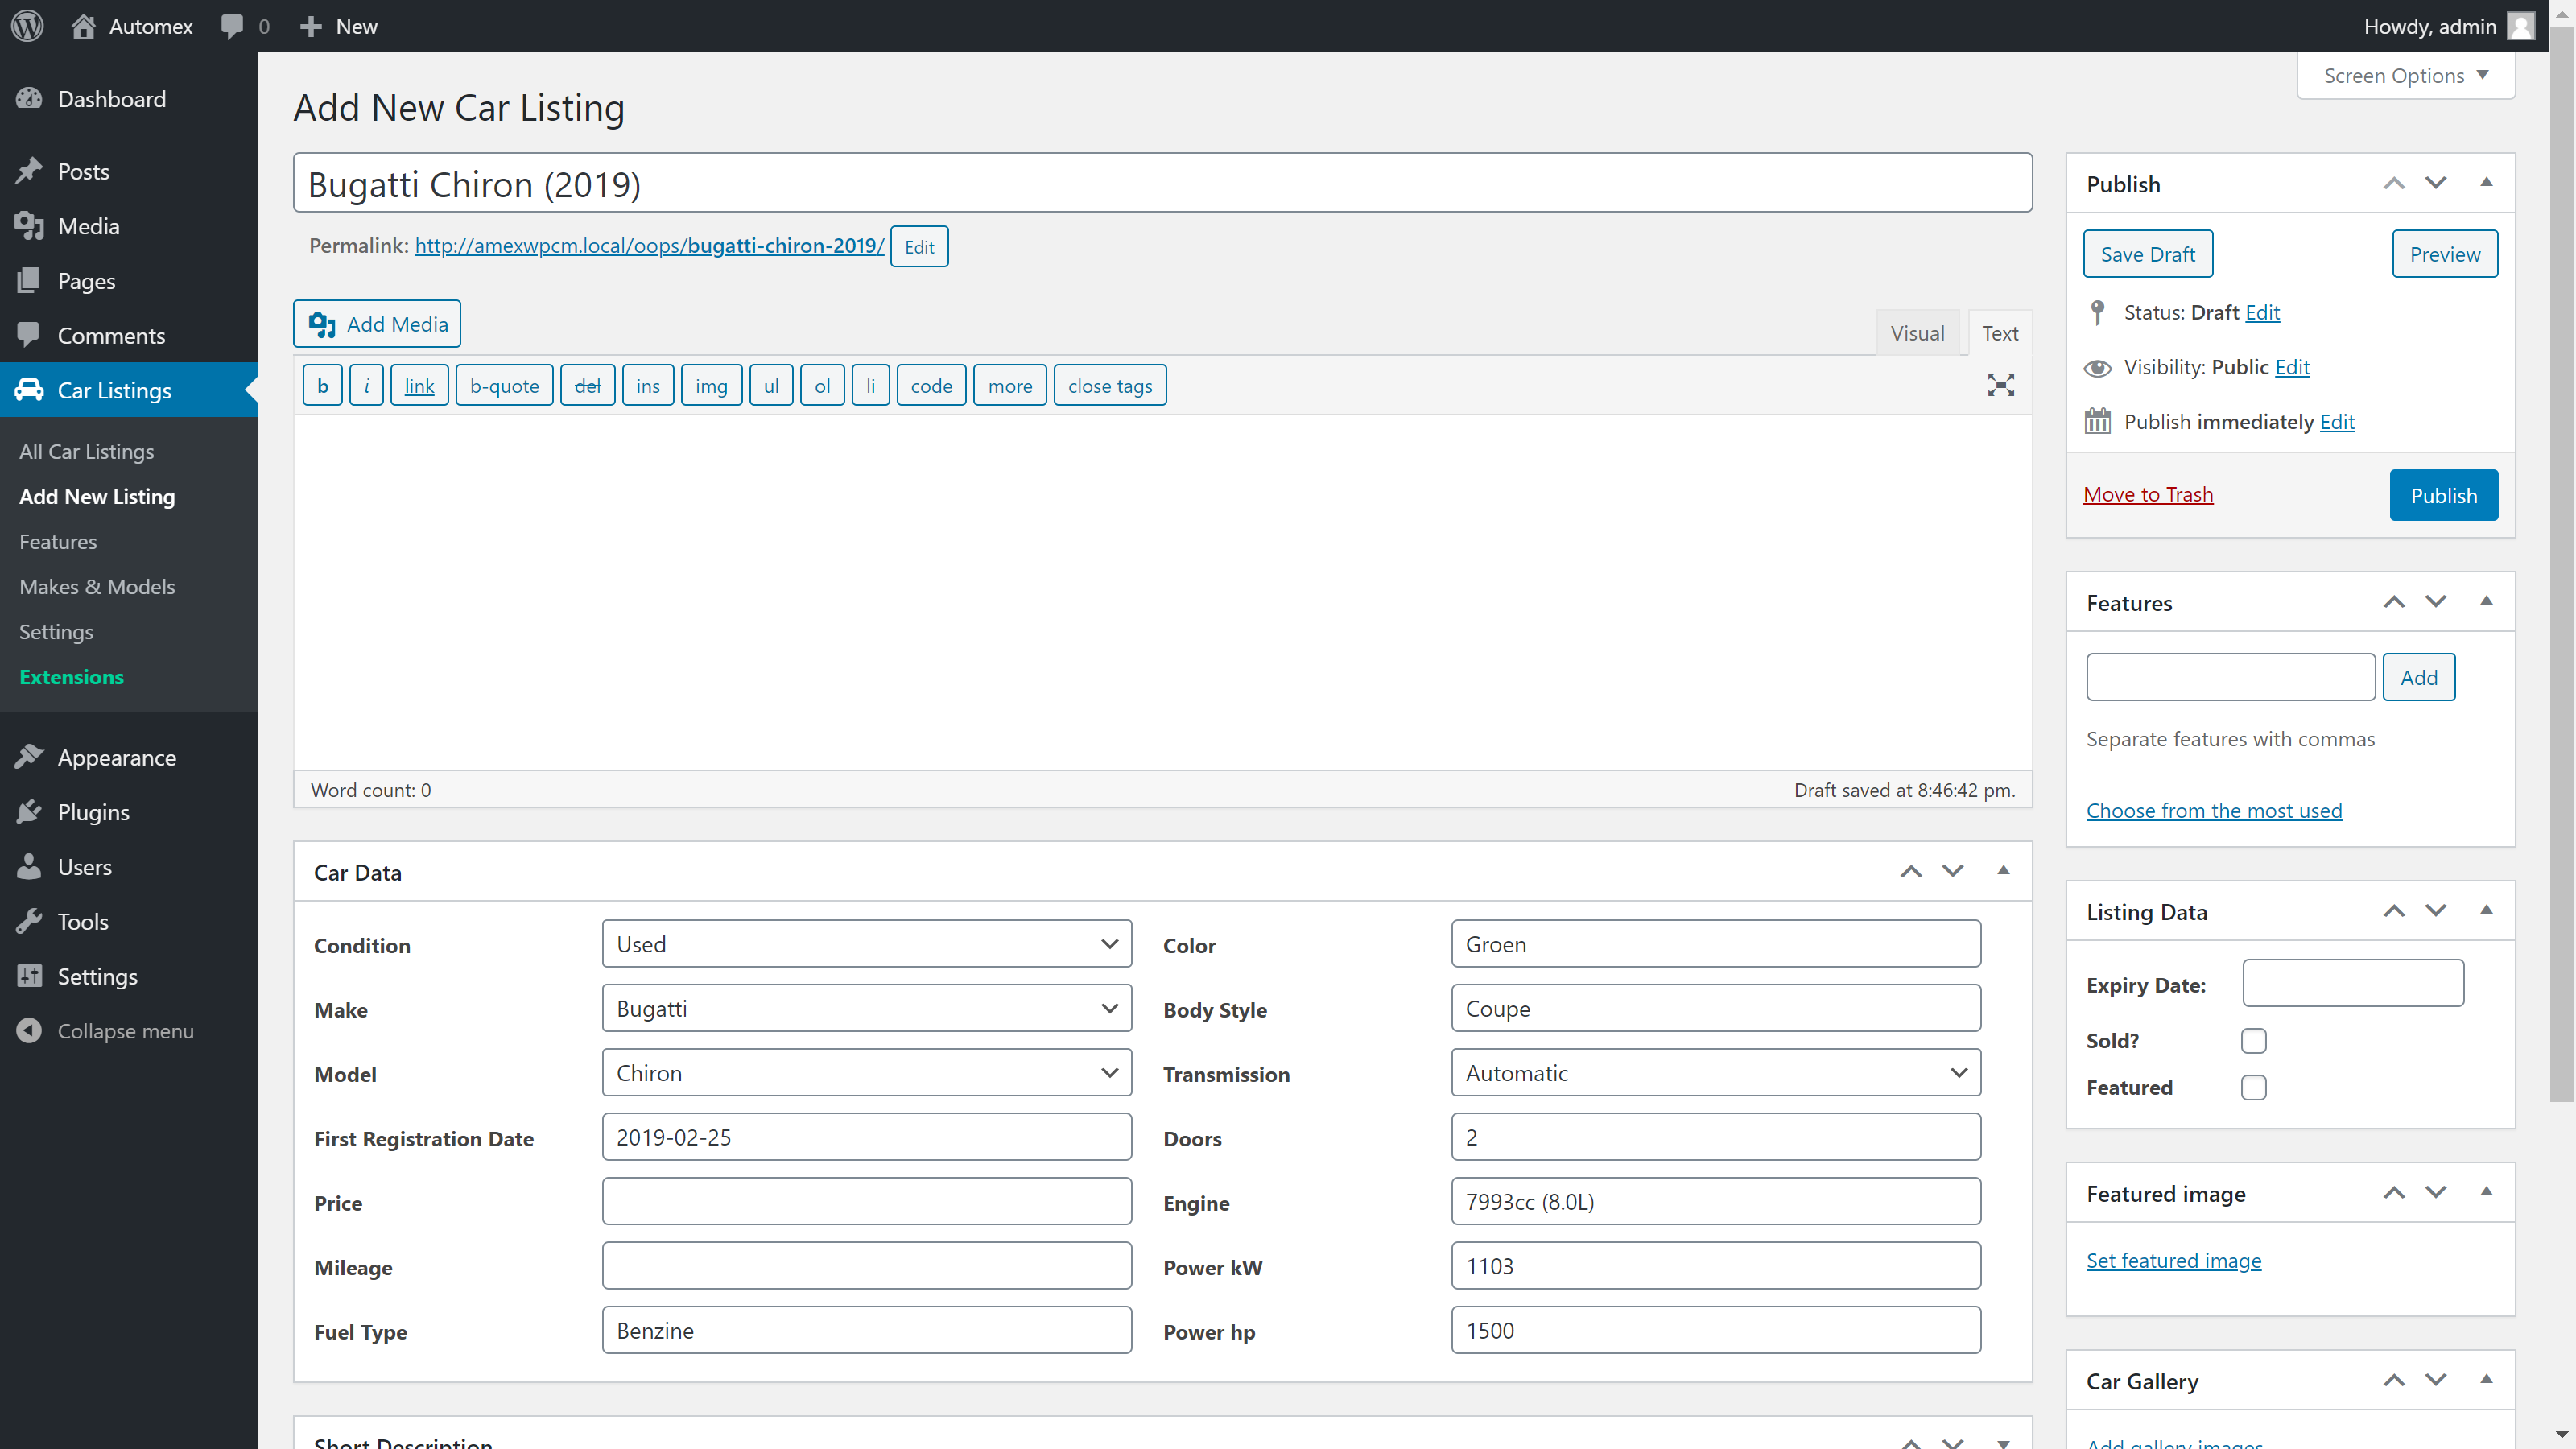 Admin Area (Add New Listing Overview Page with filled in data).